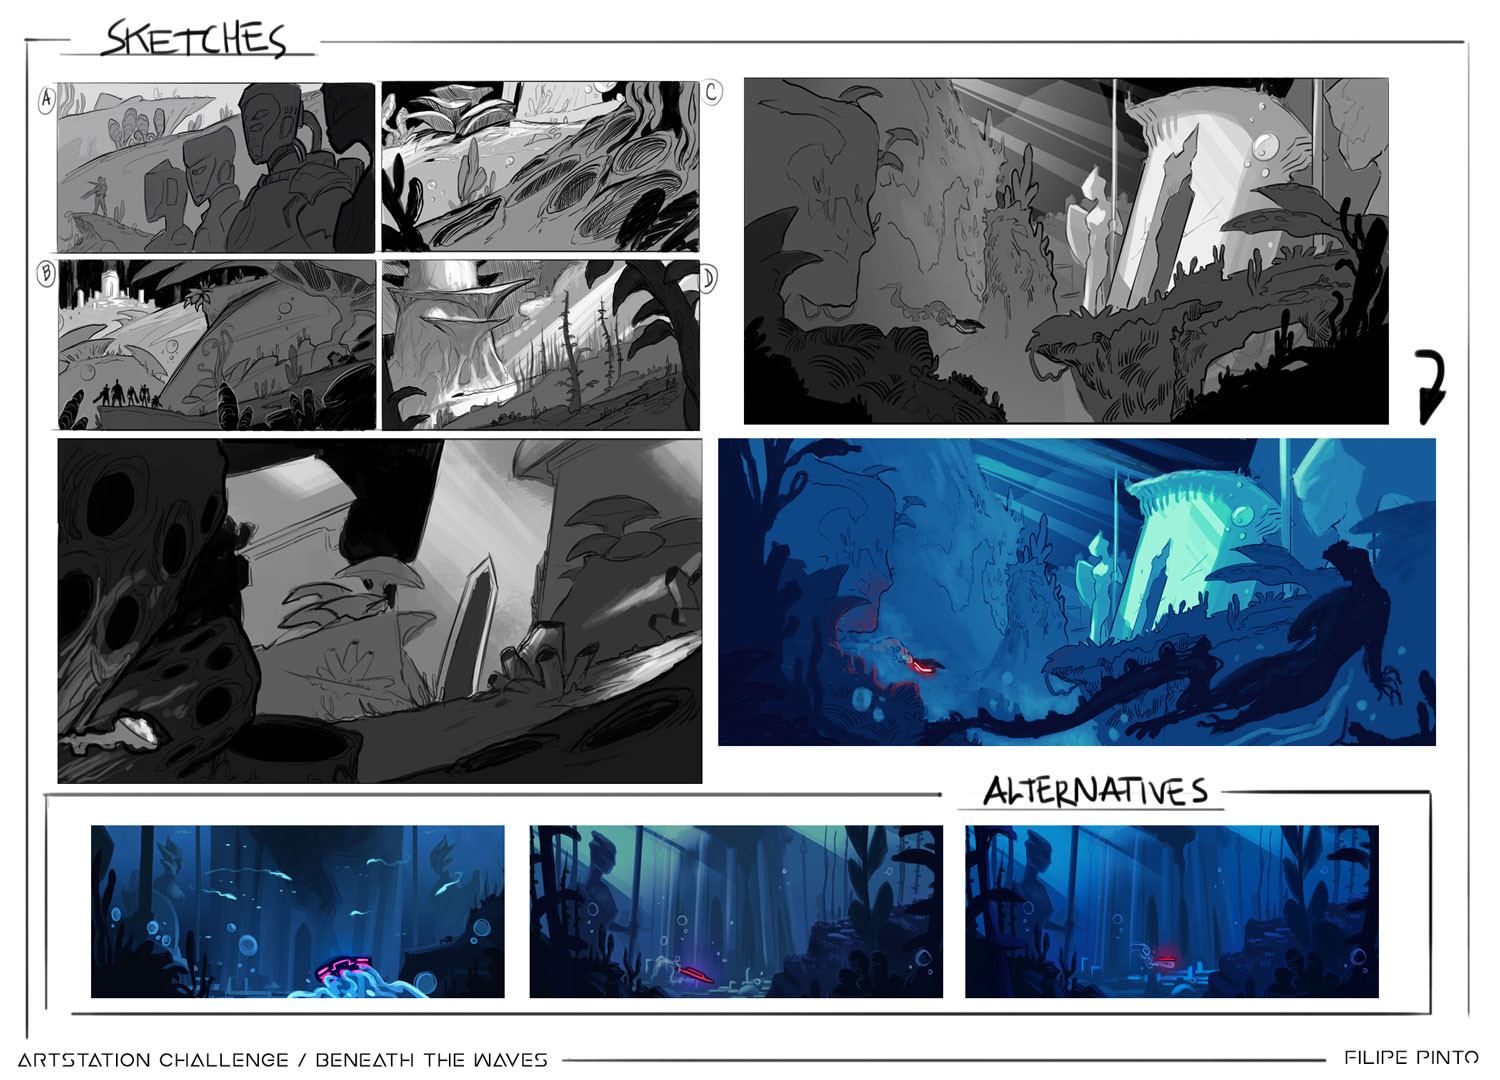 Filipe pinto keyframe1 sketches sheet